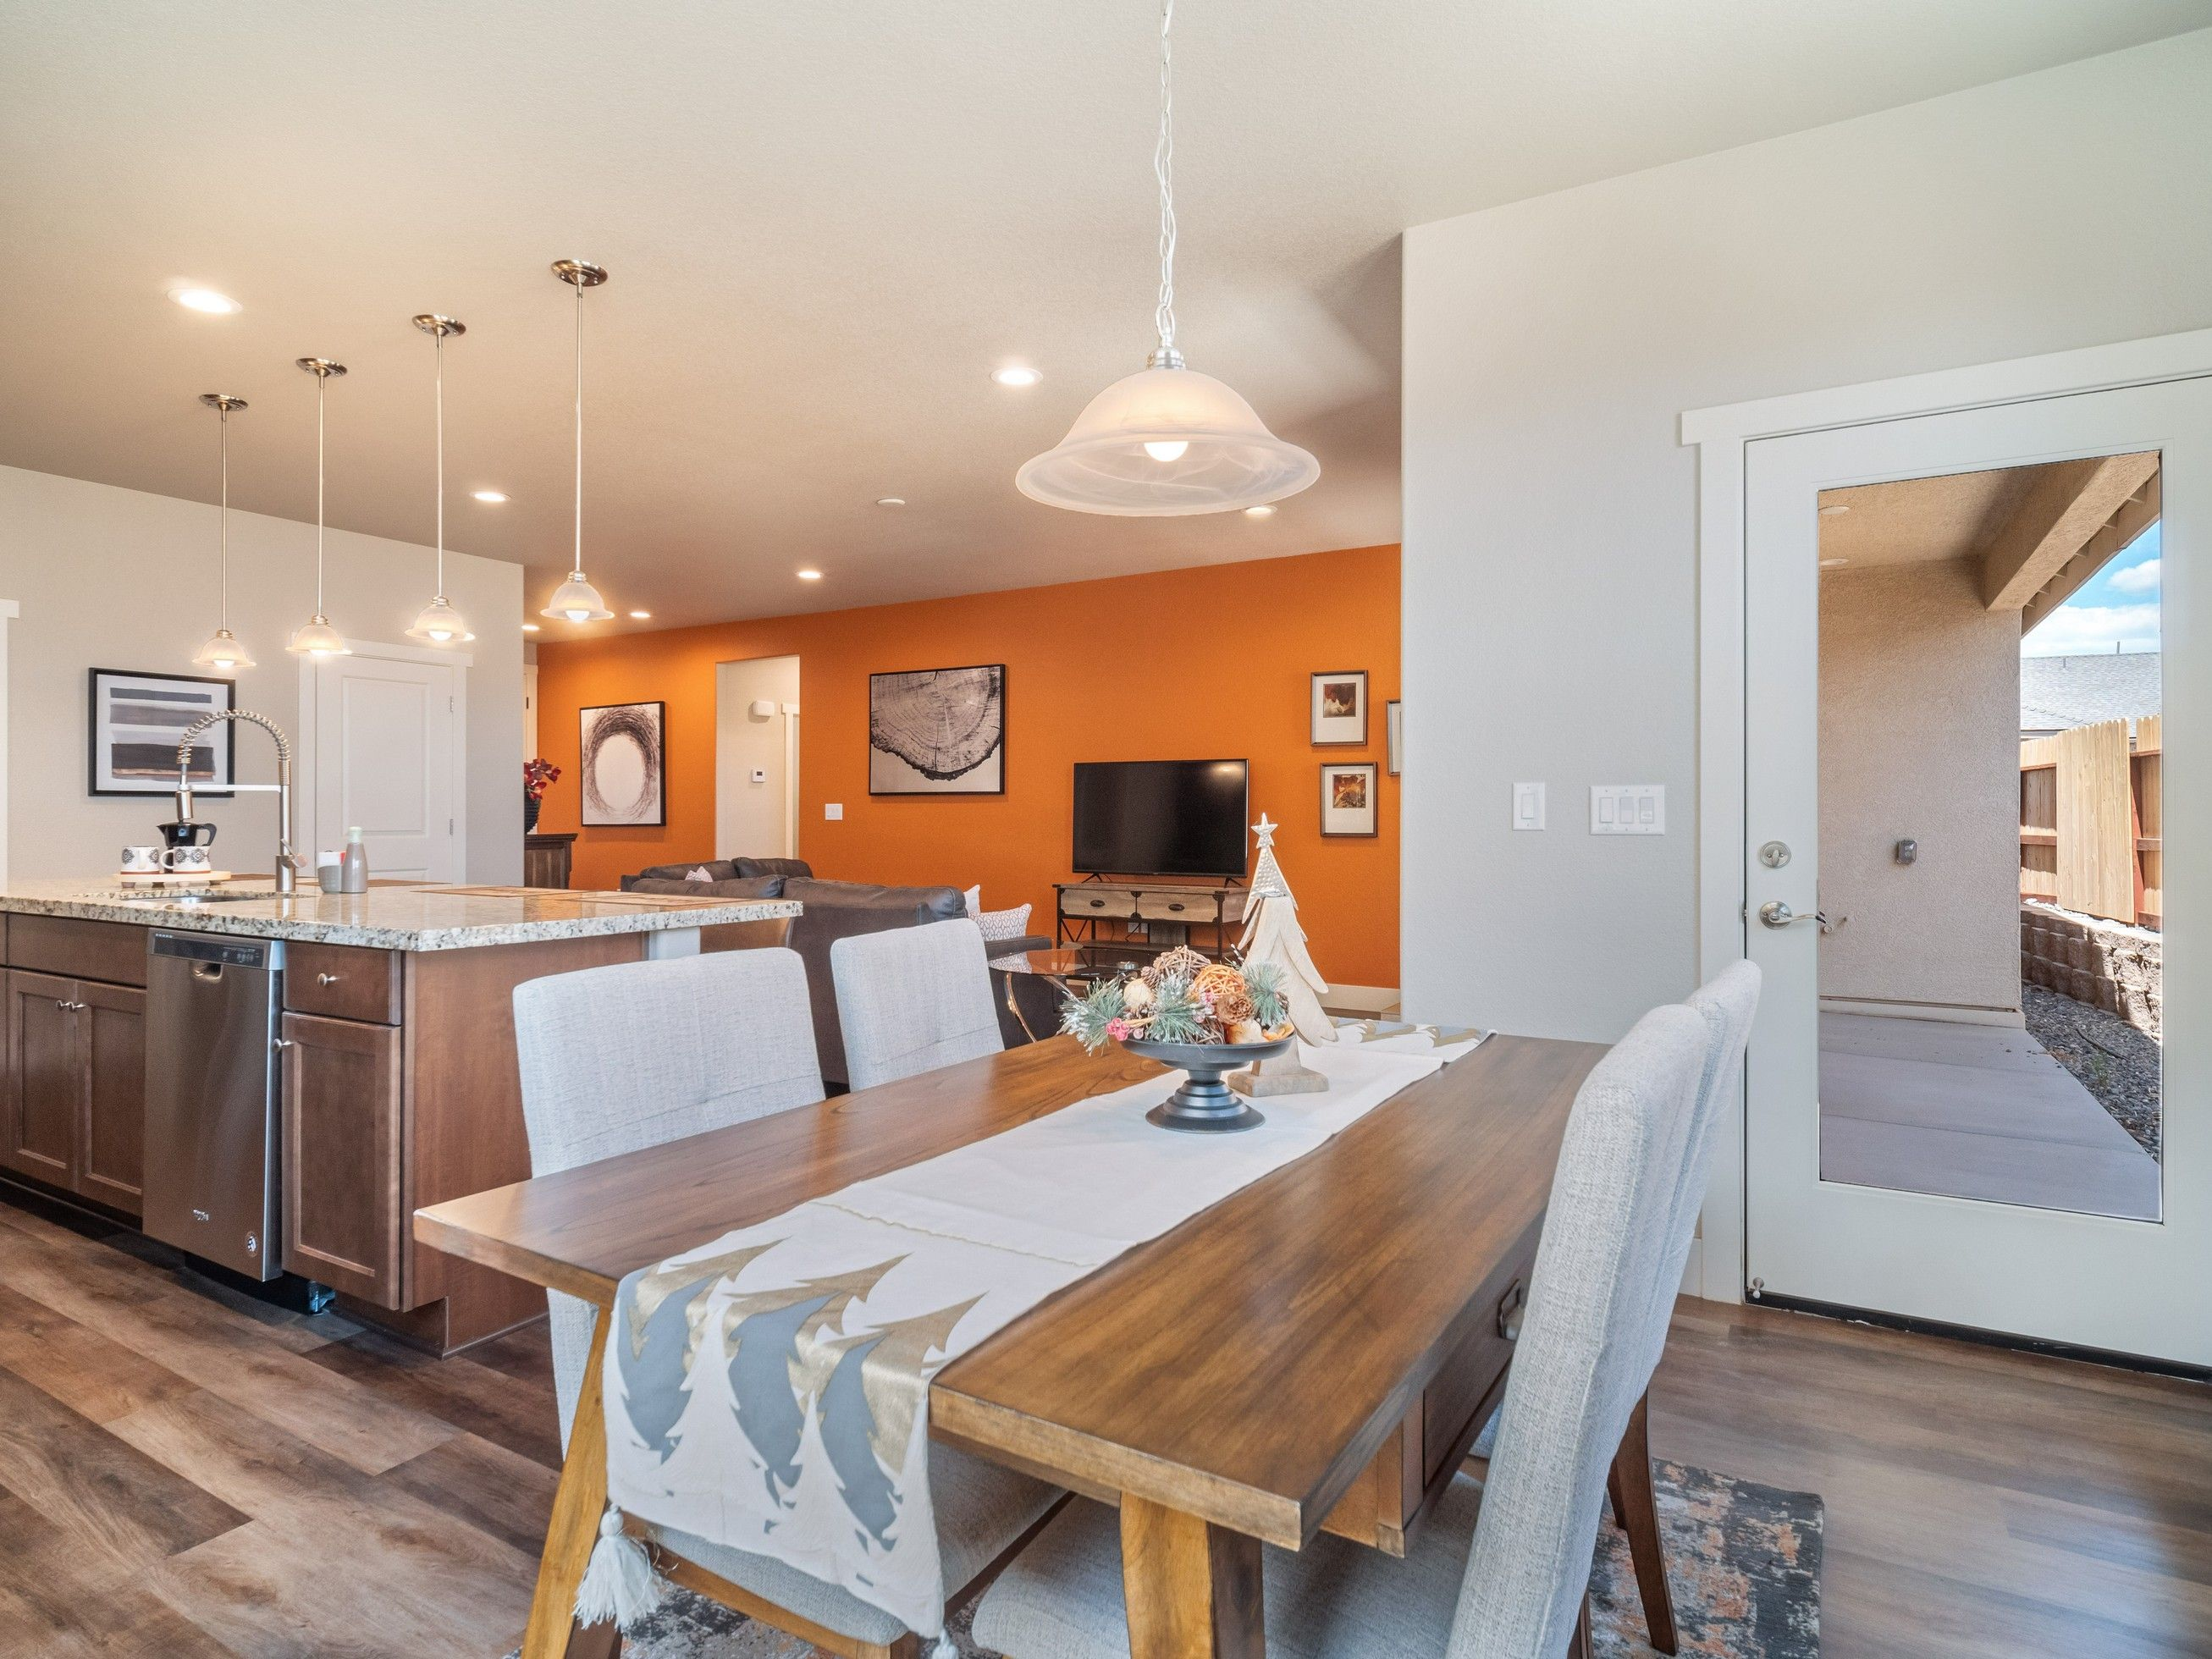 Kitchen featured in the Marigold By Carter Hill Homes in Reno, NV